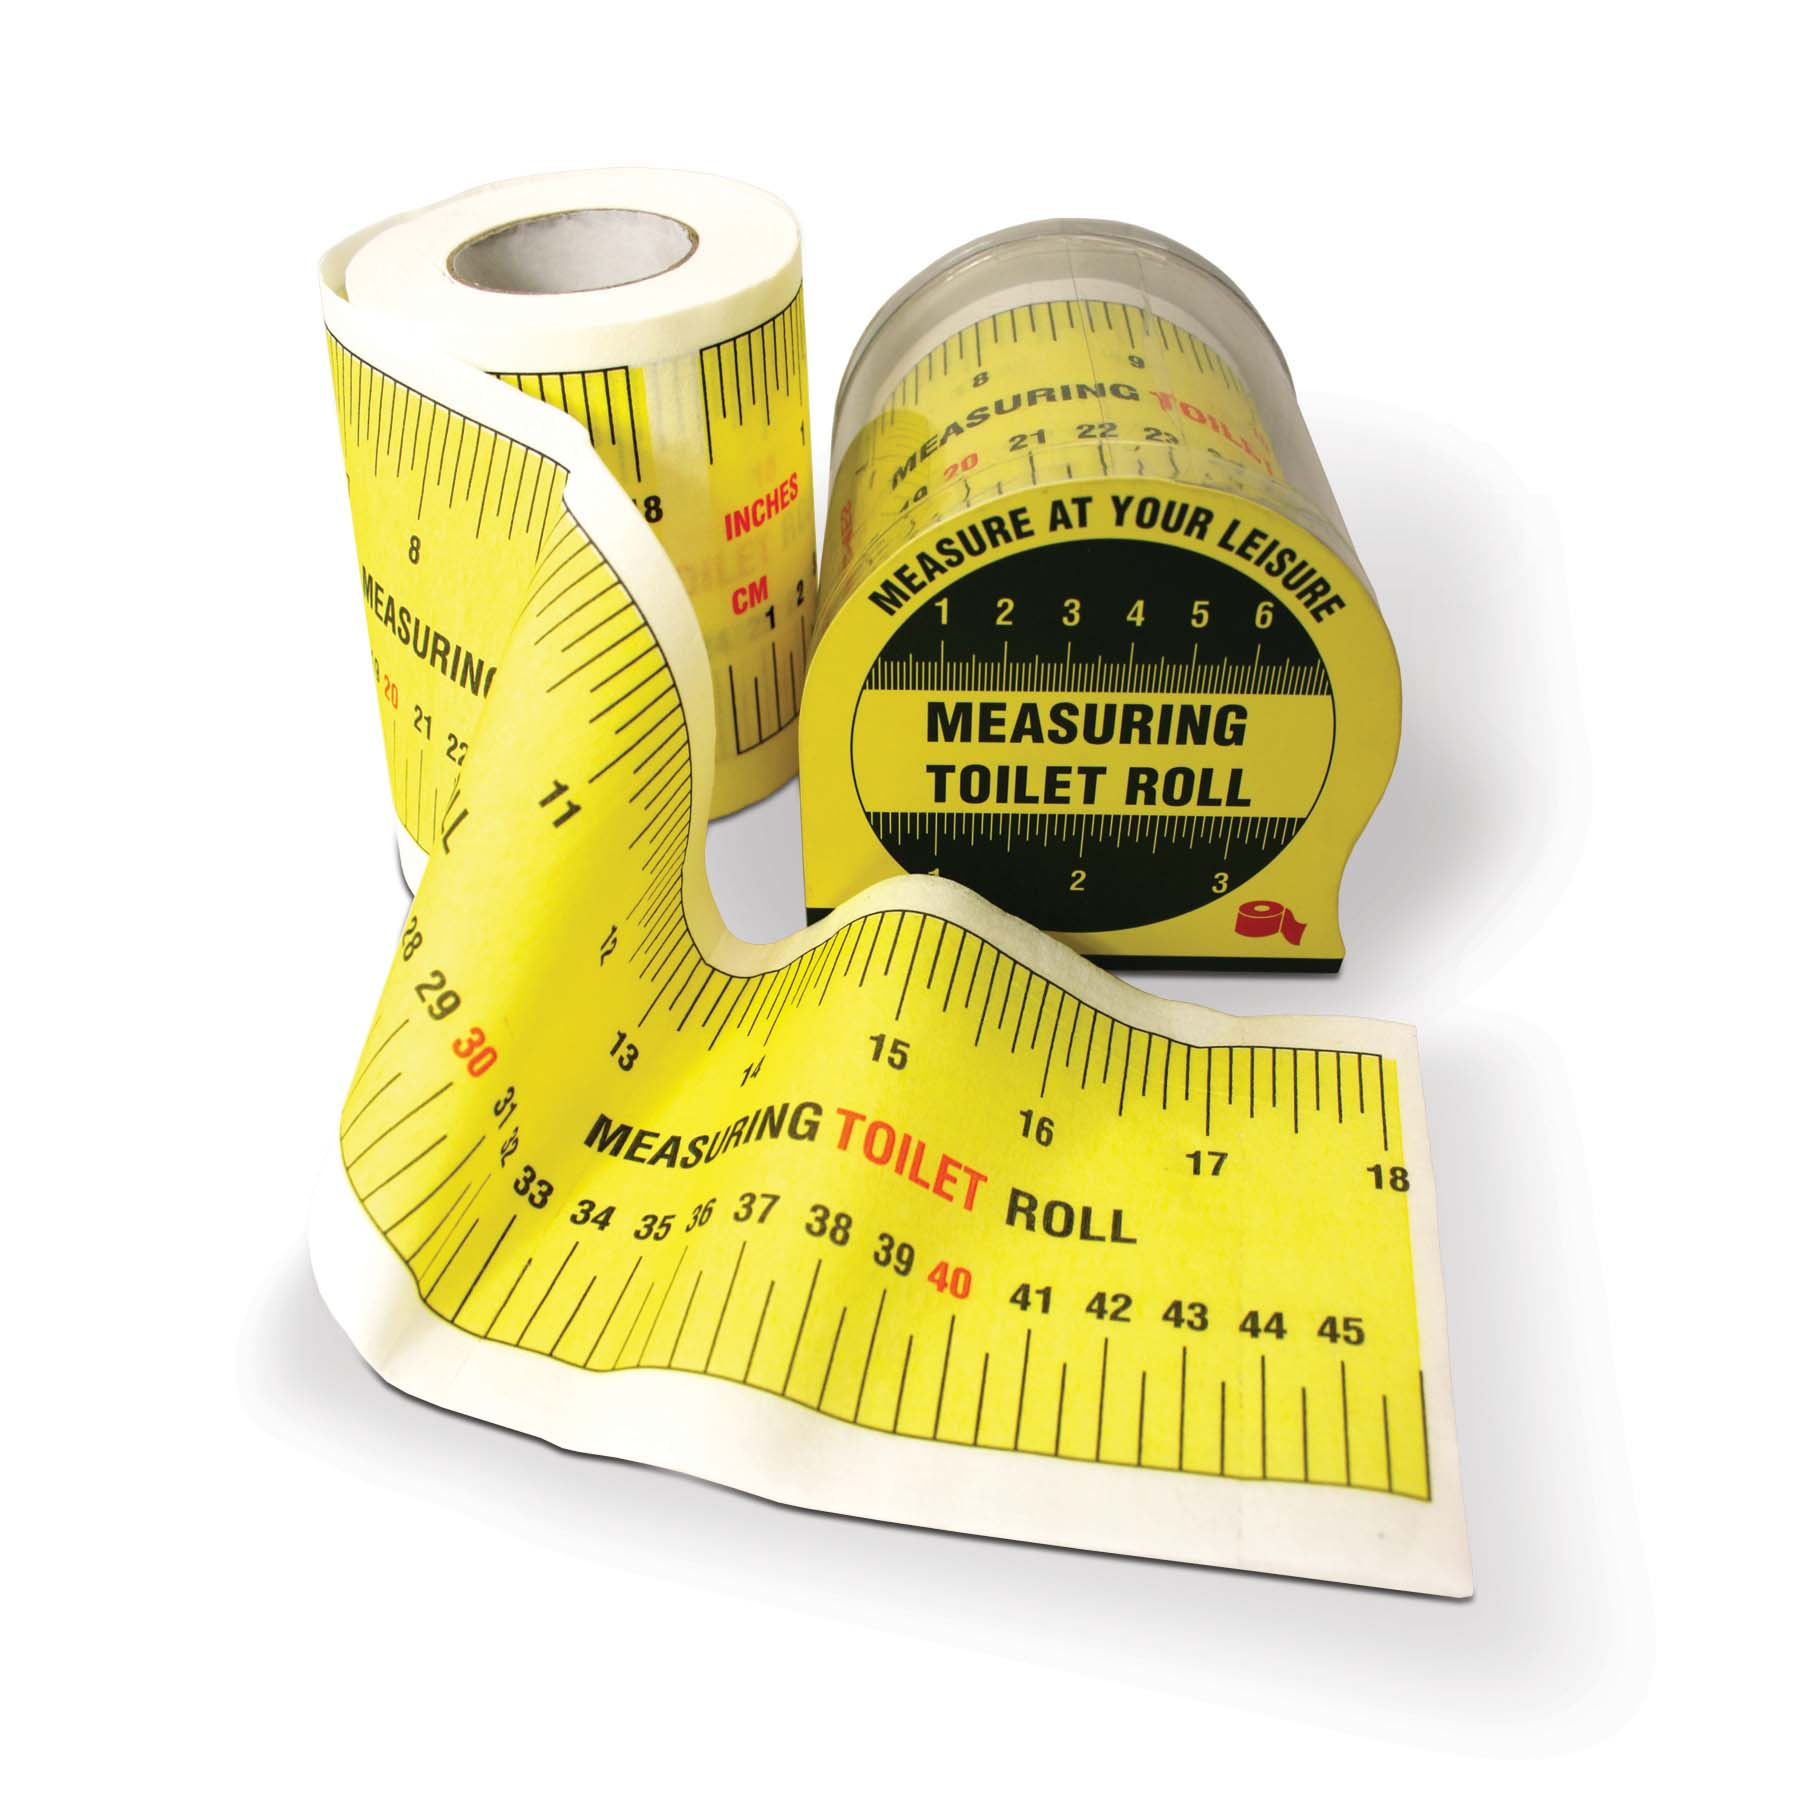 Details about NEW MEASURING TAPE TOILET ROLL NOVELTY GIFT BATHROOM LOO ...